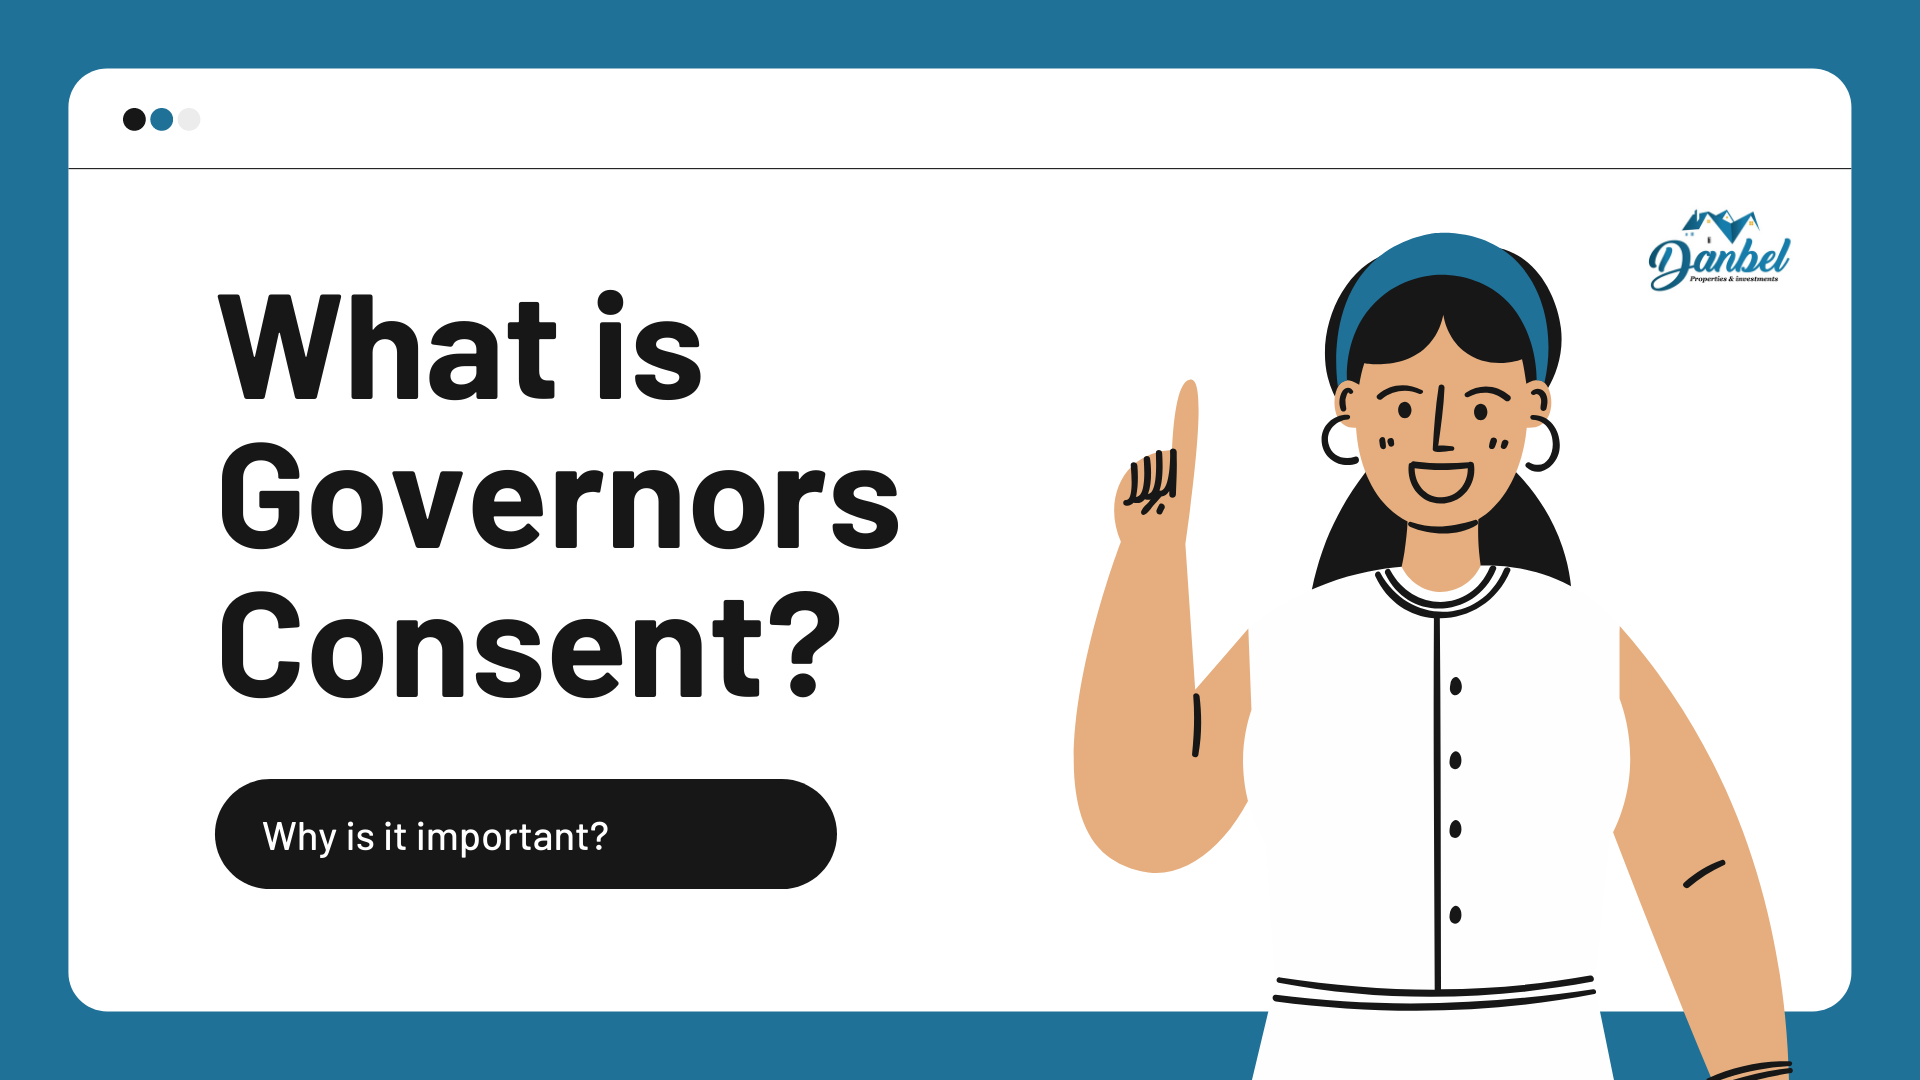 What is Governors consent